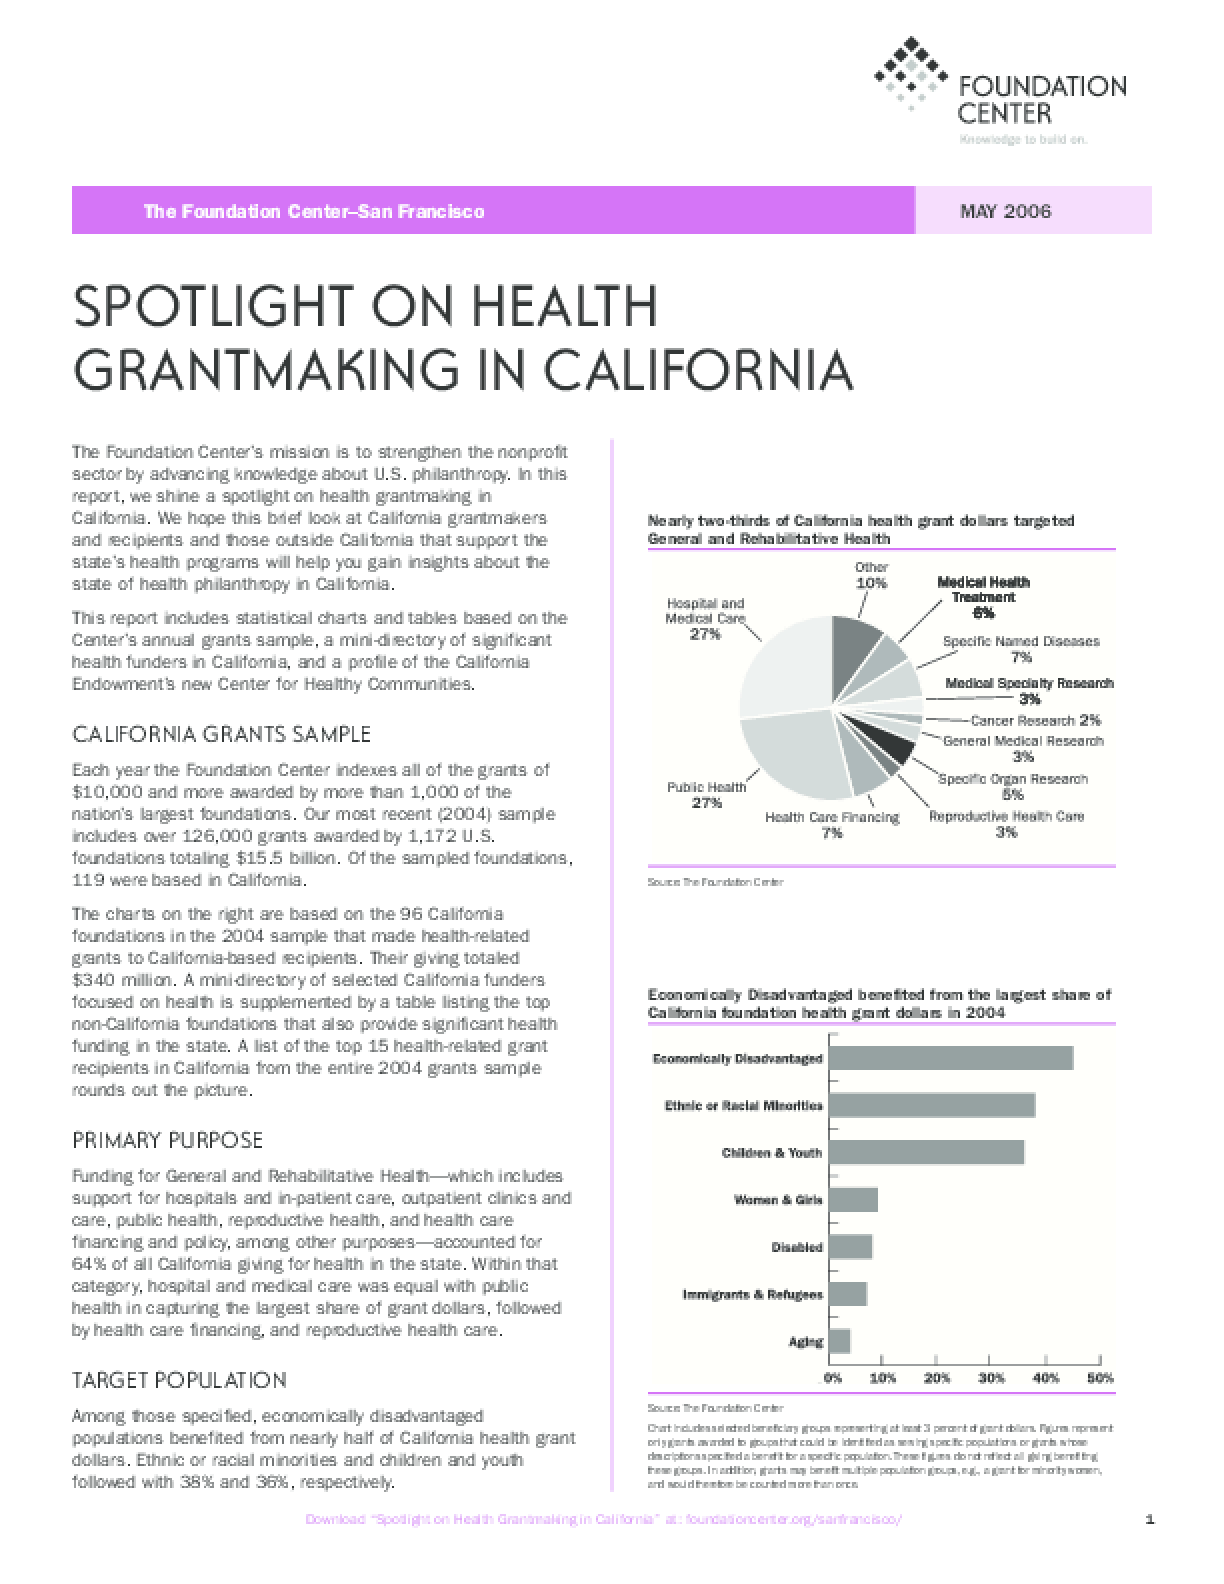 Spotlight on Health Grantmaking in California